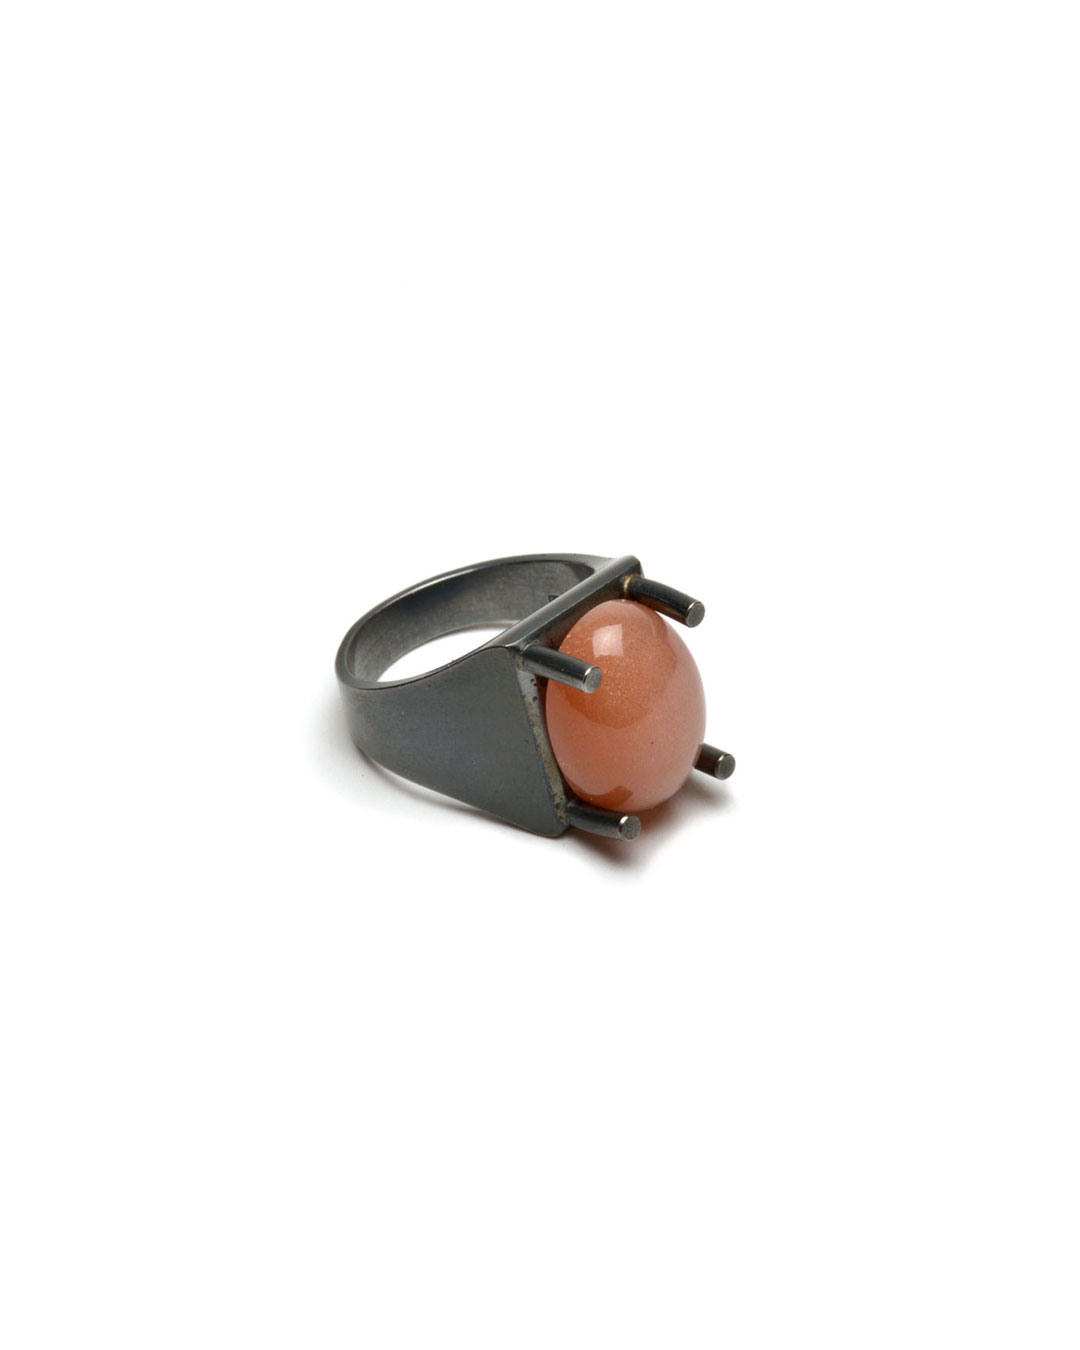 Ute Eitzenhöfer, untitled, 2014, ring; silver, moonstone, 30 x 20 x 15 mm, €500